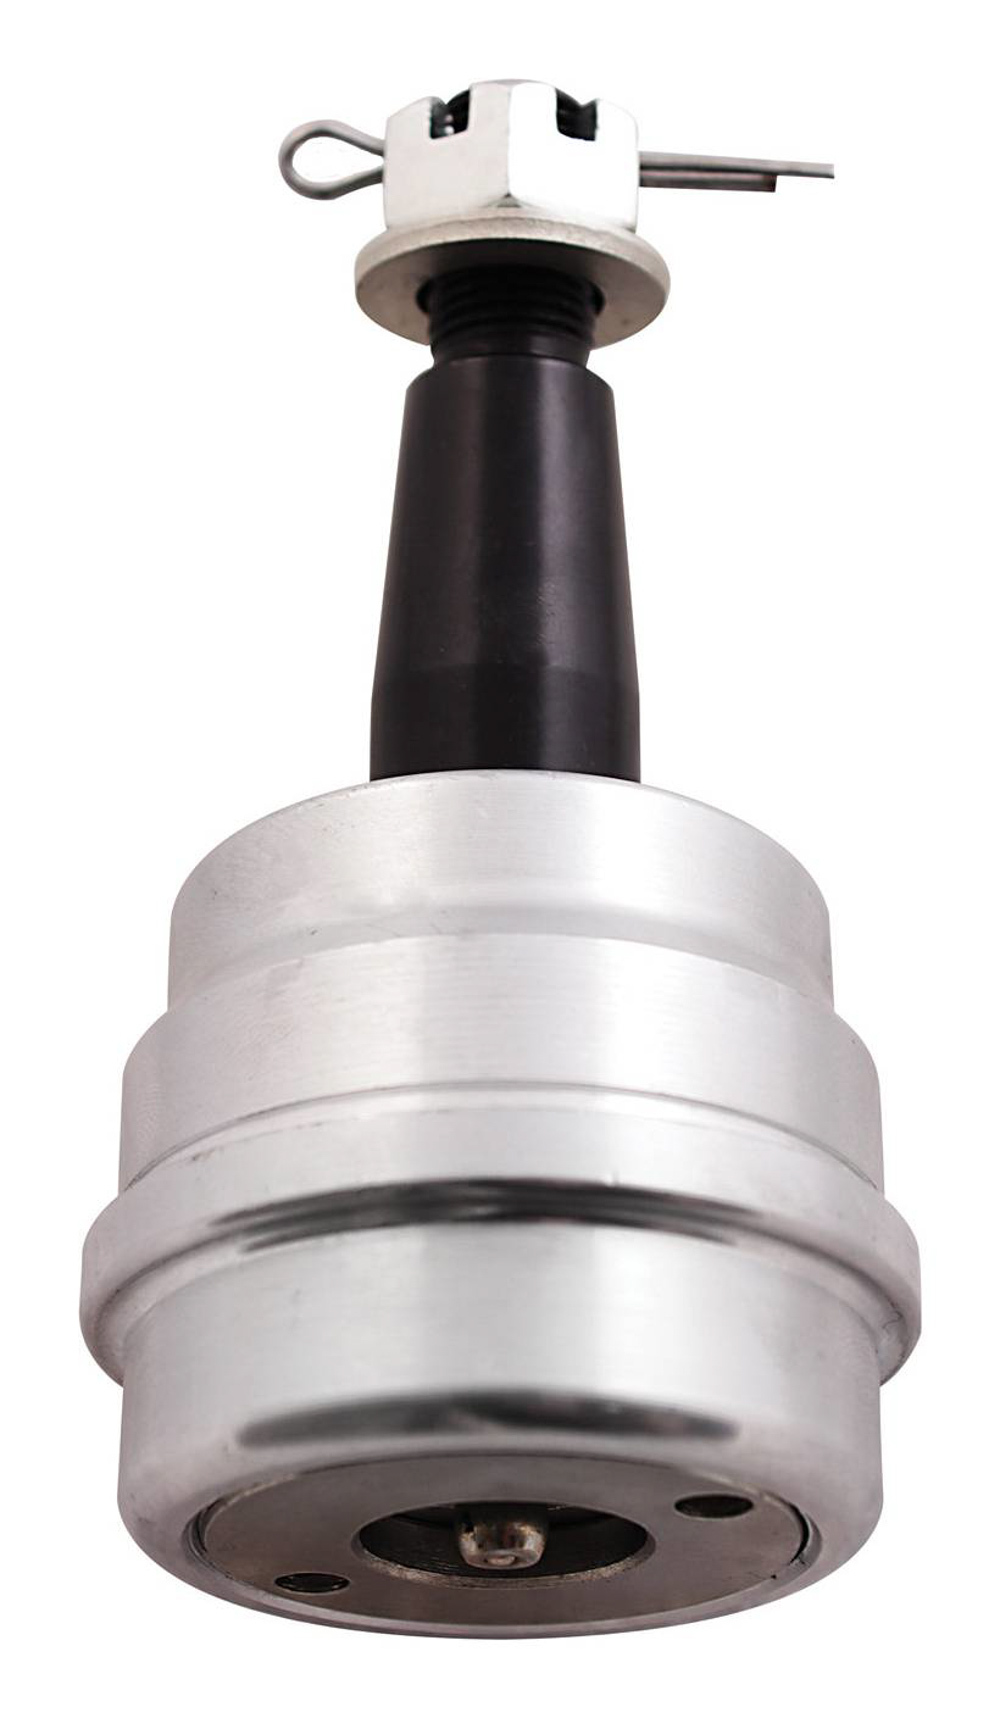 QA1 1210-109 Ball Joint, Greasable, Lower, Press-In, 2.000 in/ft Taper, 3.641 in Stud, 1/2-20 in Thread, Steel, Each